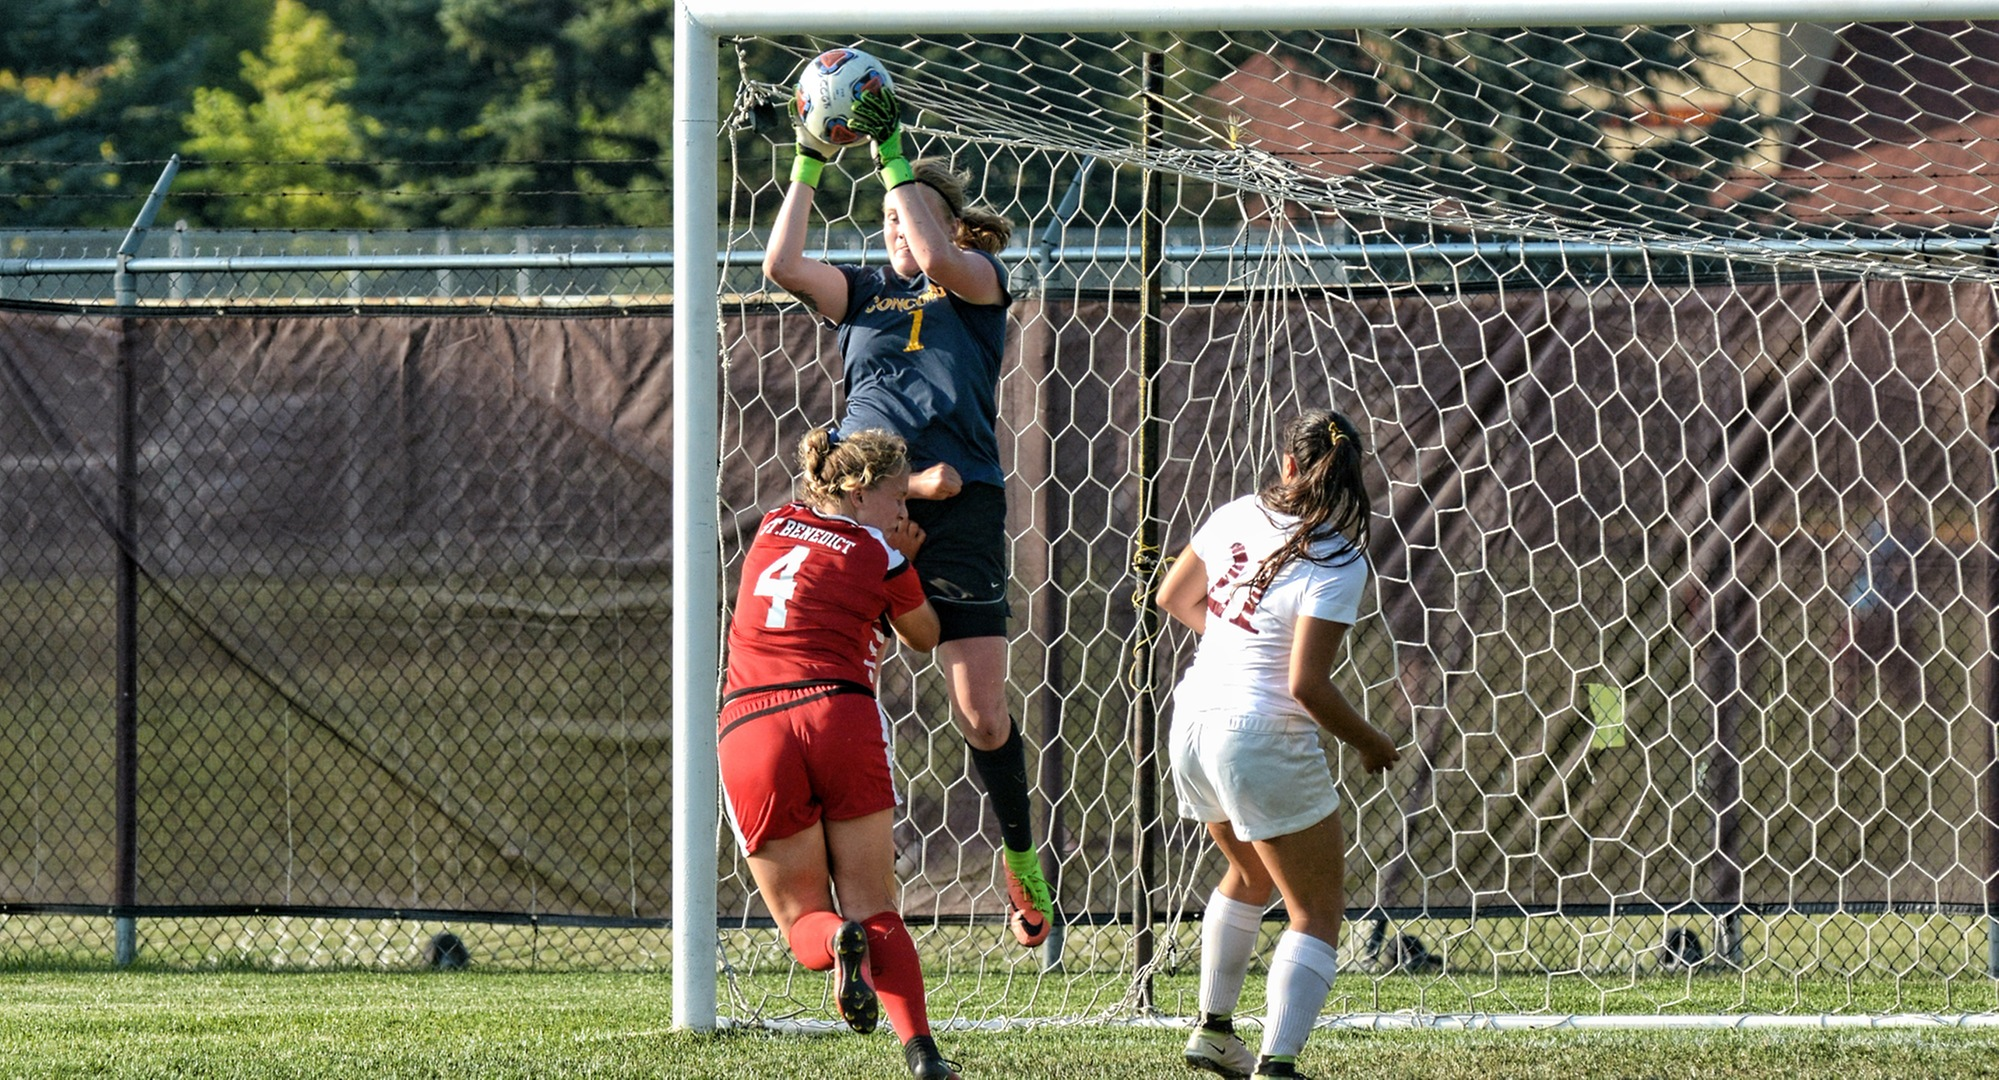 Concordia junior goalie Maddy Reed rises above the competition as she snares a crossing attempt during the Cobbers' MIAC opener with St. Ben's.